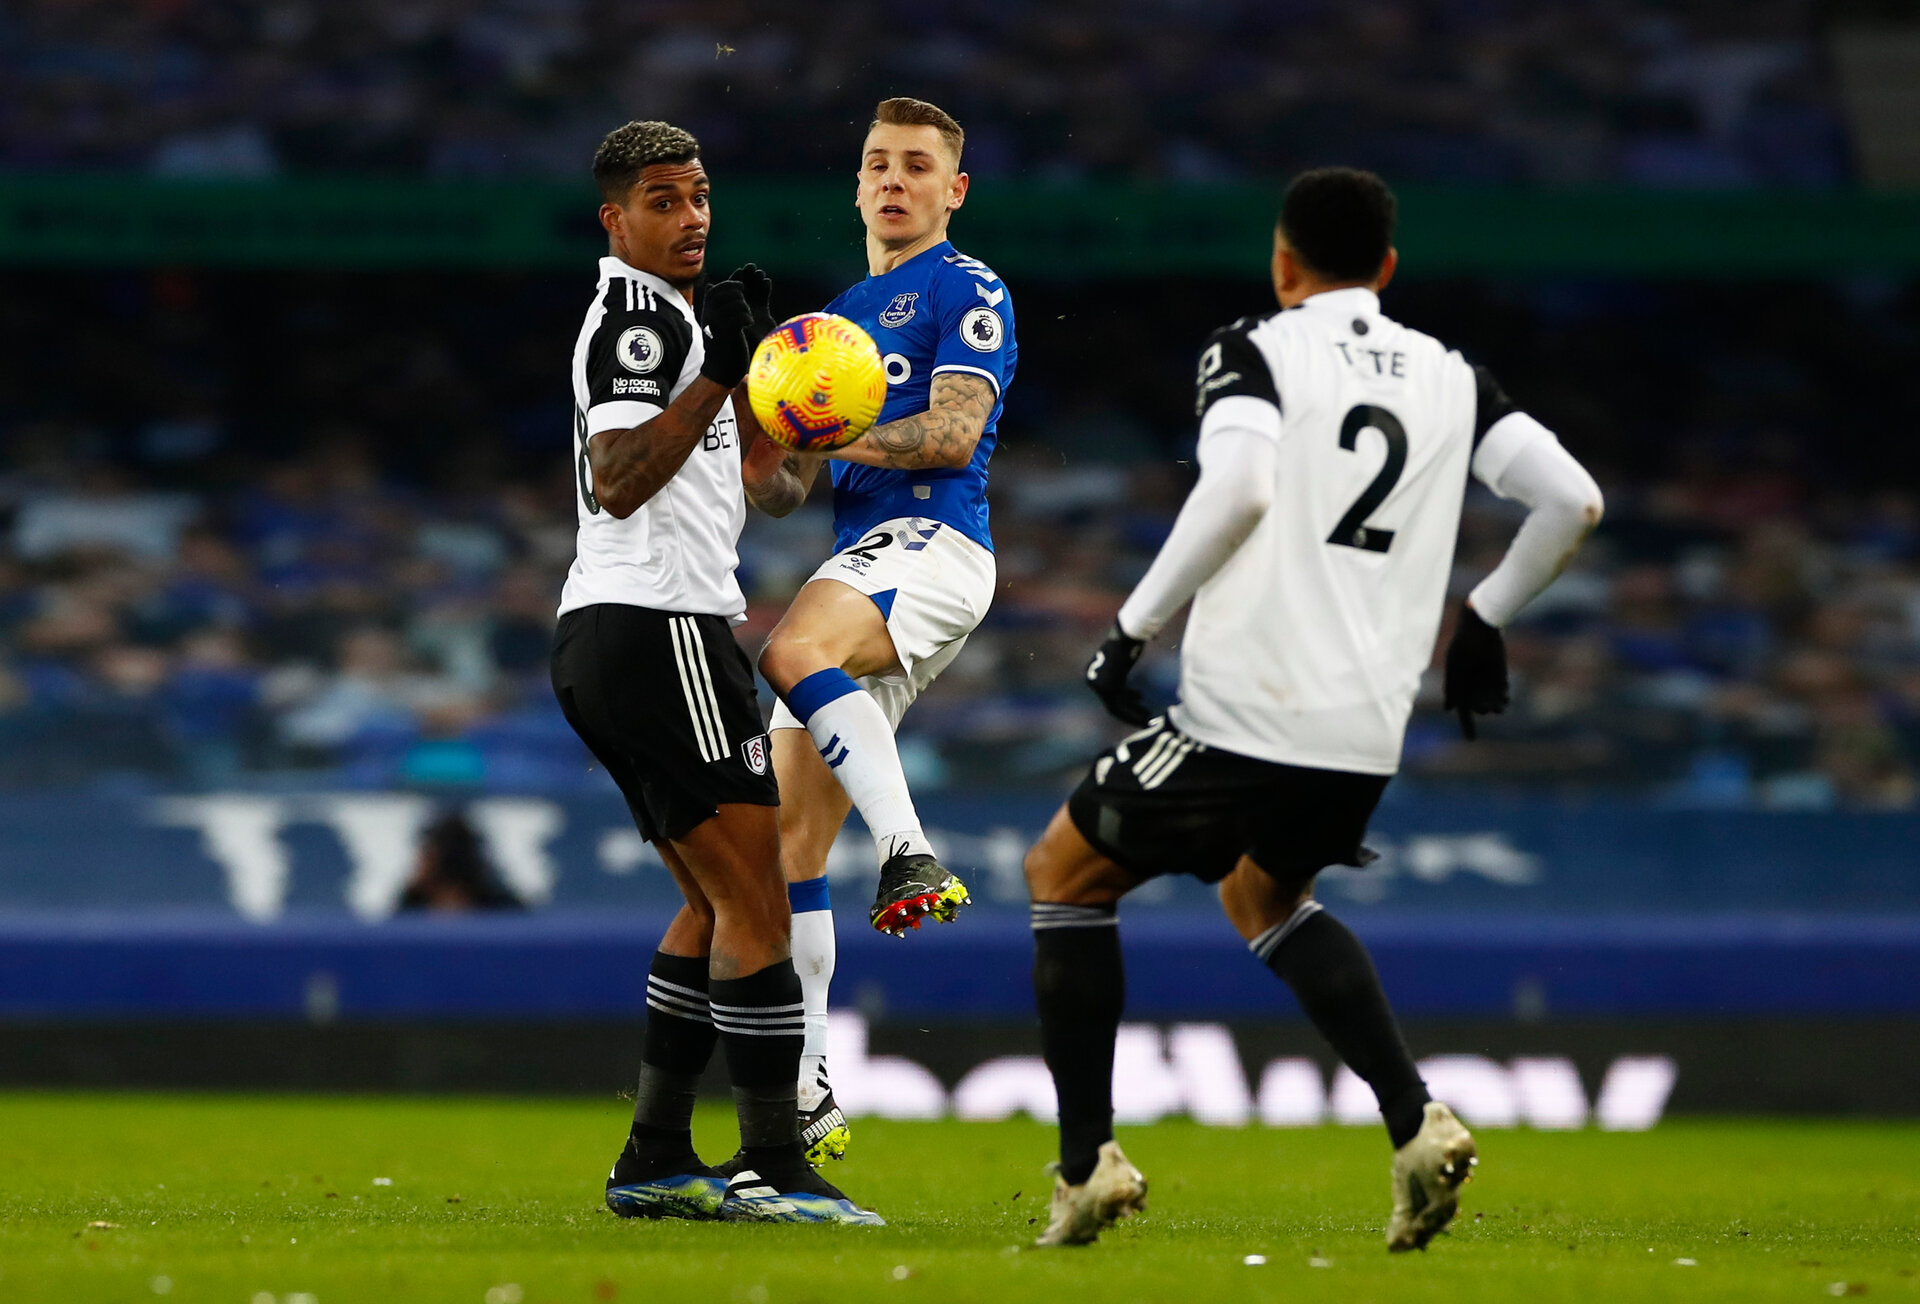 LIVERPOOL, ENGLAND - FEBRUARY 14: Lucas Digne of Everton and Mario Lemina of Fulham battle for the ball  during the Premier League match between Everton and Fulham at Goodison Park on February 14, 2021 in Liverpool, England. Sporting stadiums around the UK remain under strict restrictions due to the Coronavirus Pandemic as Government social distancing laws prohibit fans inside venues resulting in games being played behind closed doors. (Photo by Jason Cairnduff - Pool/Getty Images)